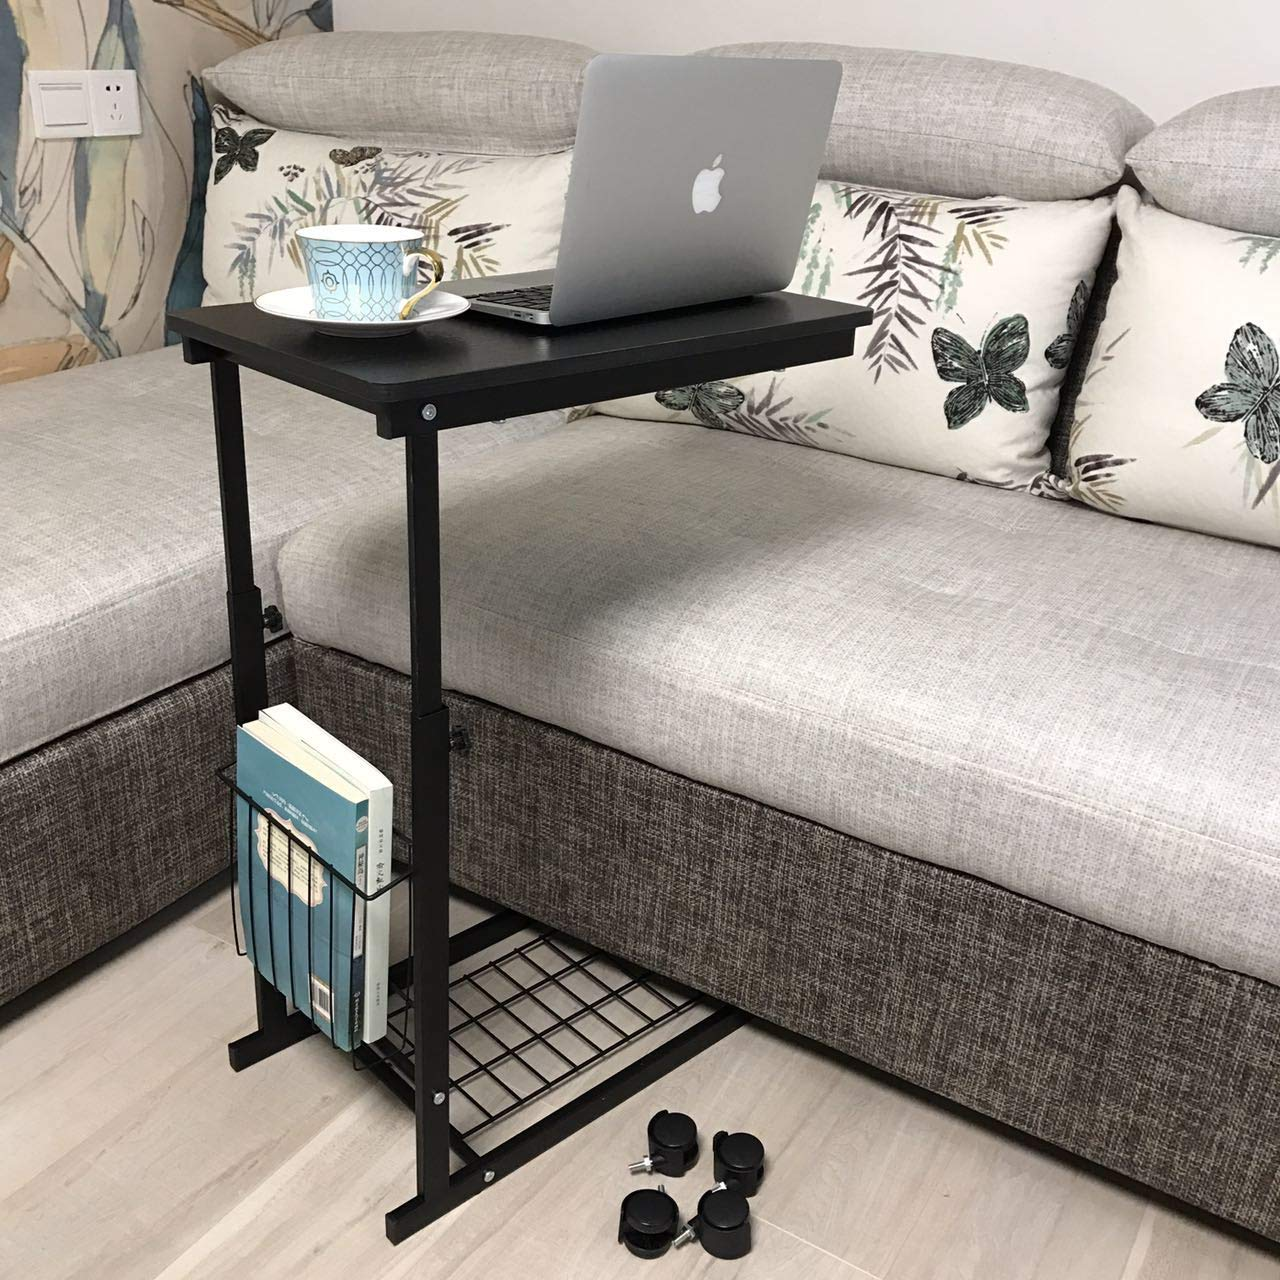 micoe height adjustable with wheels sofa side table accent slide under console storage for entryway hallway kitchen dining target standing lamp ikea cube unit modern reclaimed